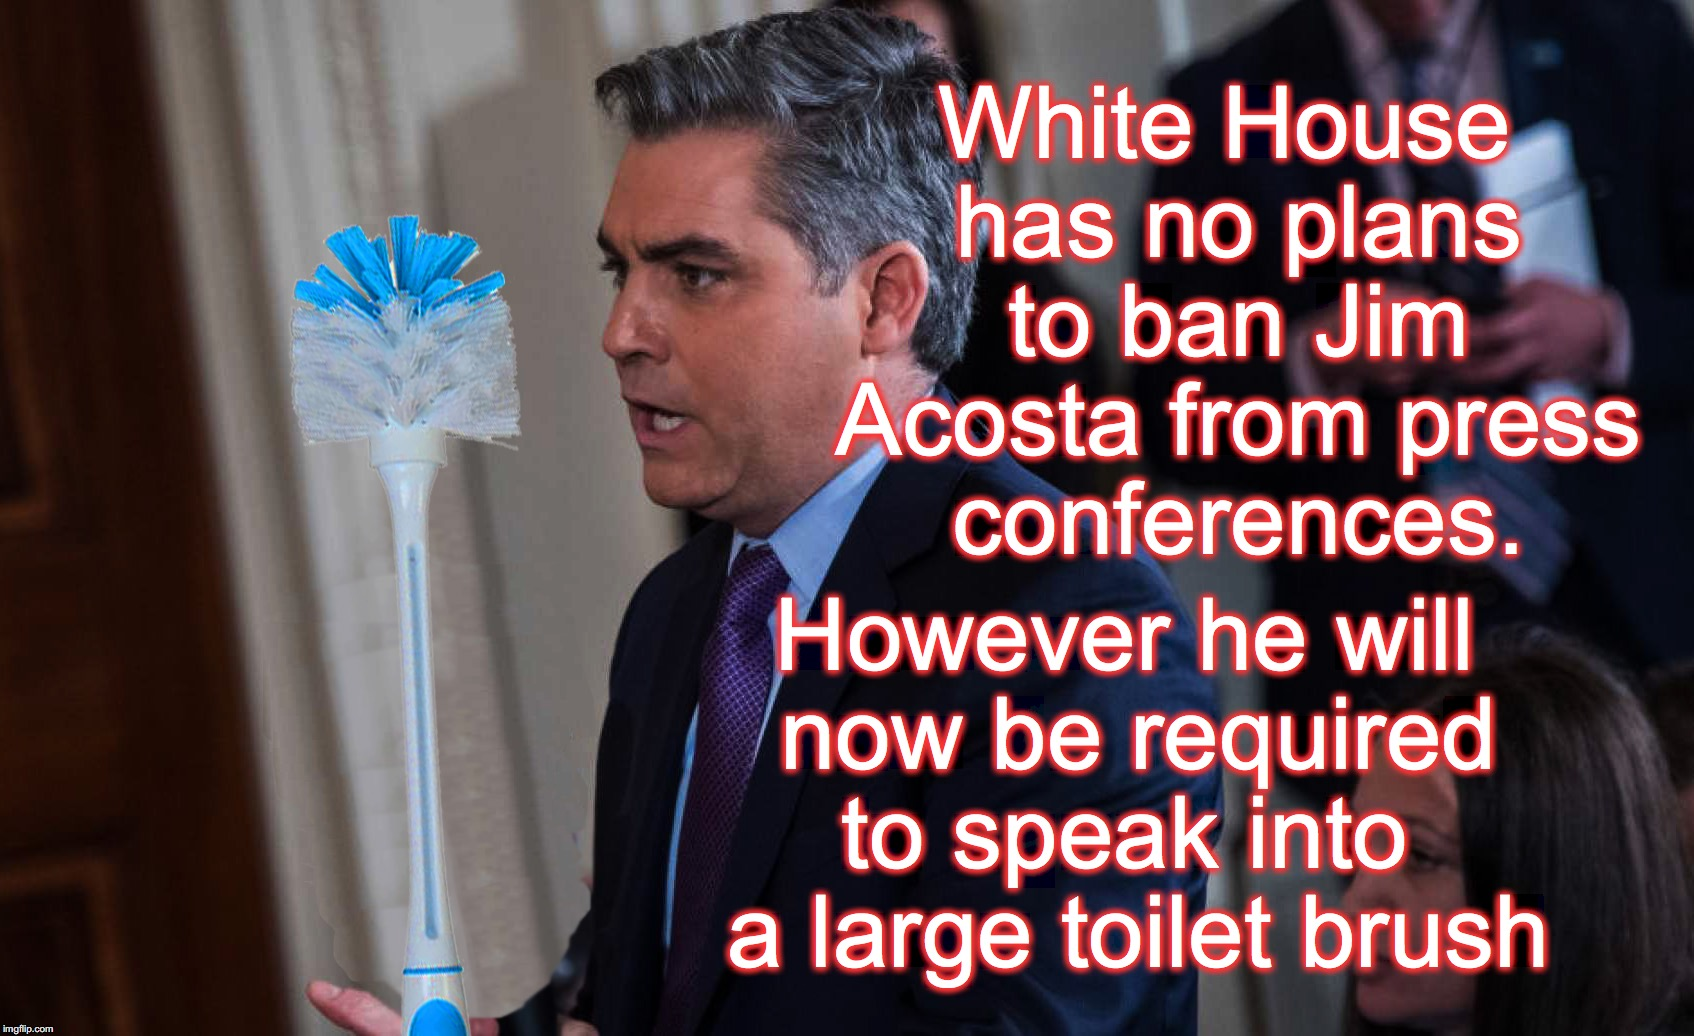 Jim Acosta Microphone | White House has no plans to ban Jim Acosta from press conferences. However he will now be required to speak into  a large toilet brush | image tagged in cnn very fake news | made w/ Imgflip meme maker